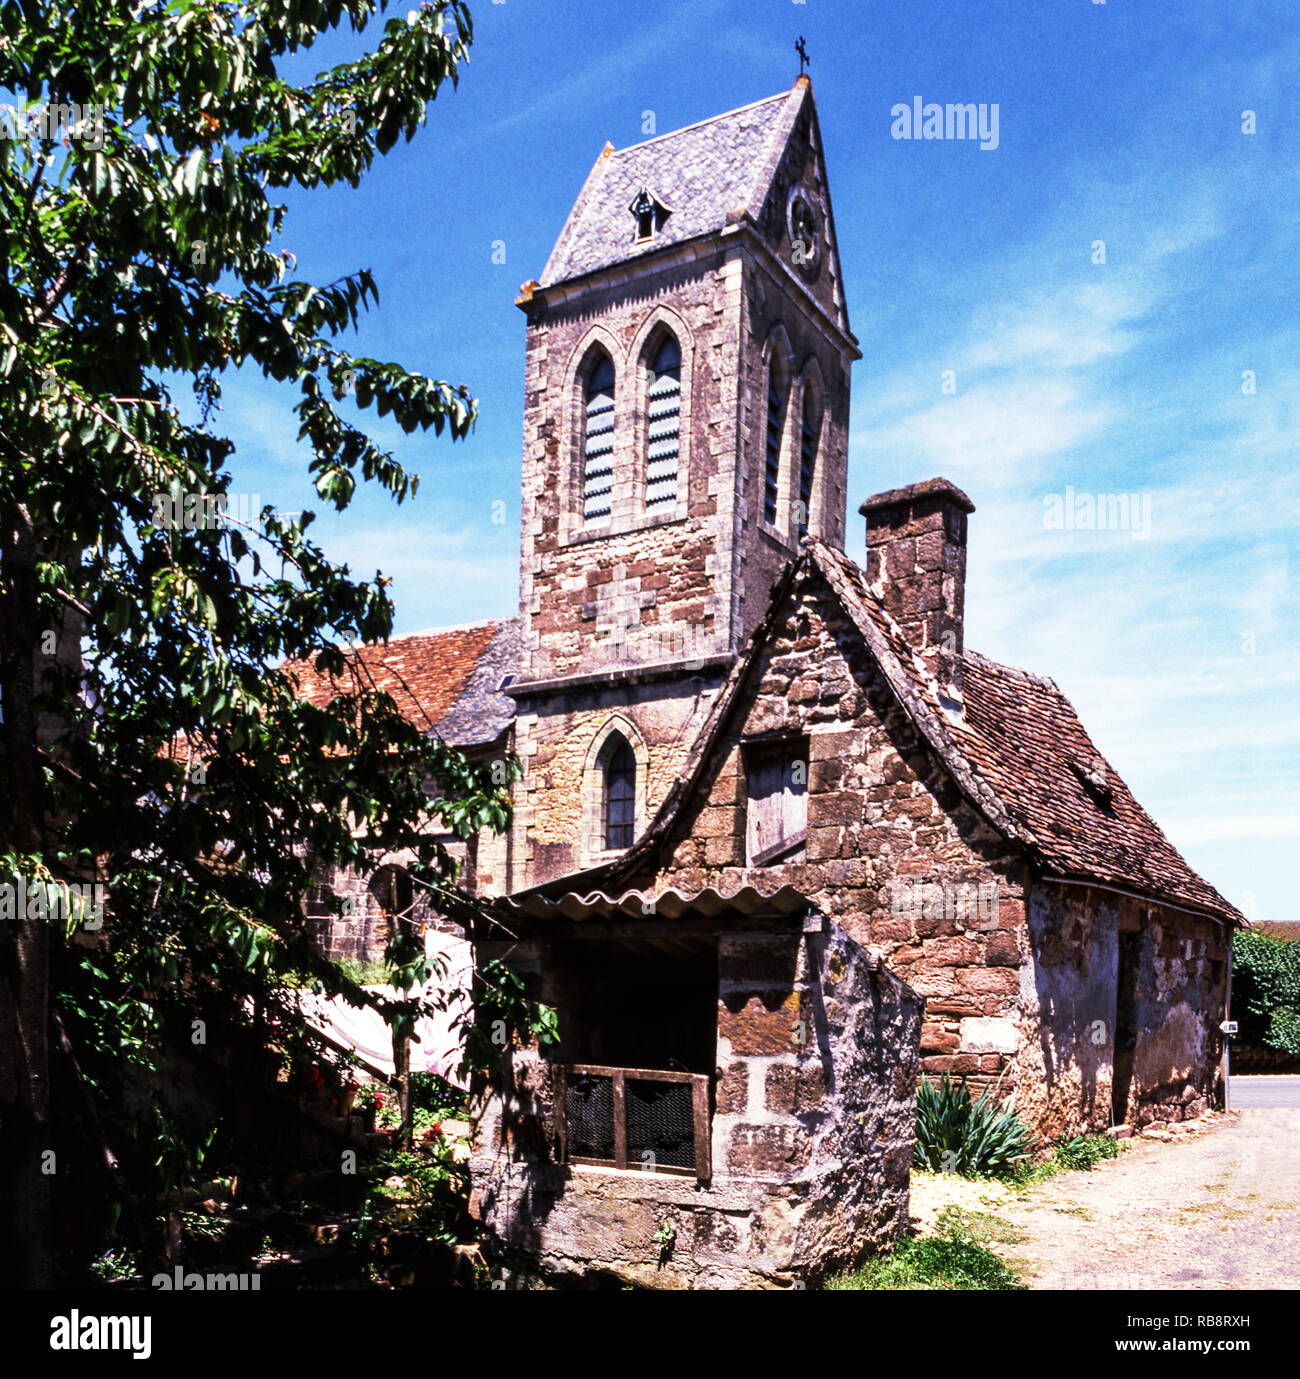 The village church of Louignac in the Correze Department.France. - Stock Image